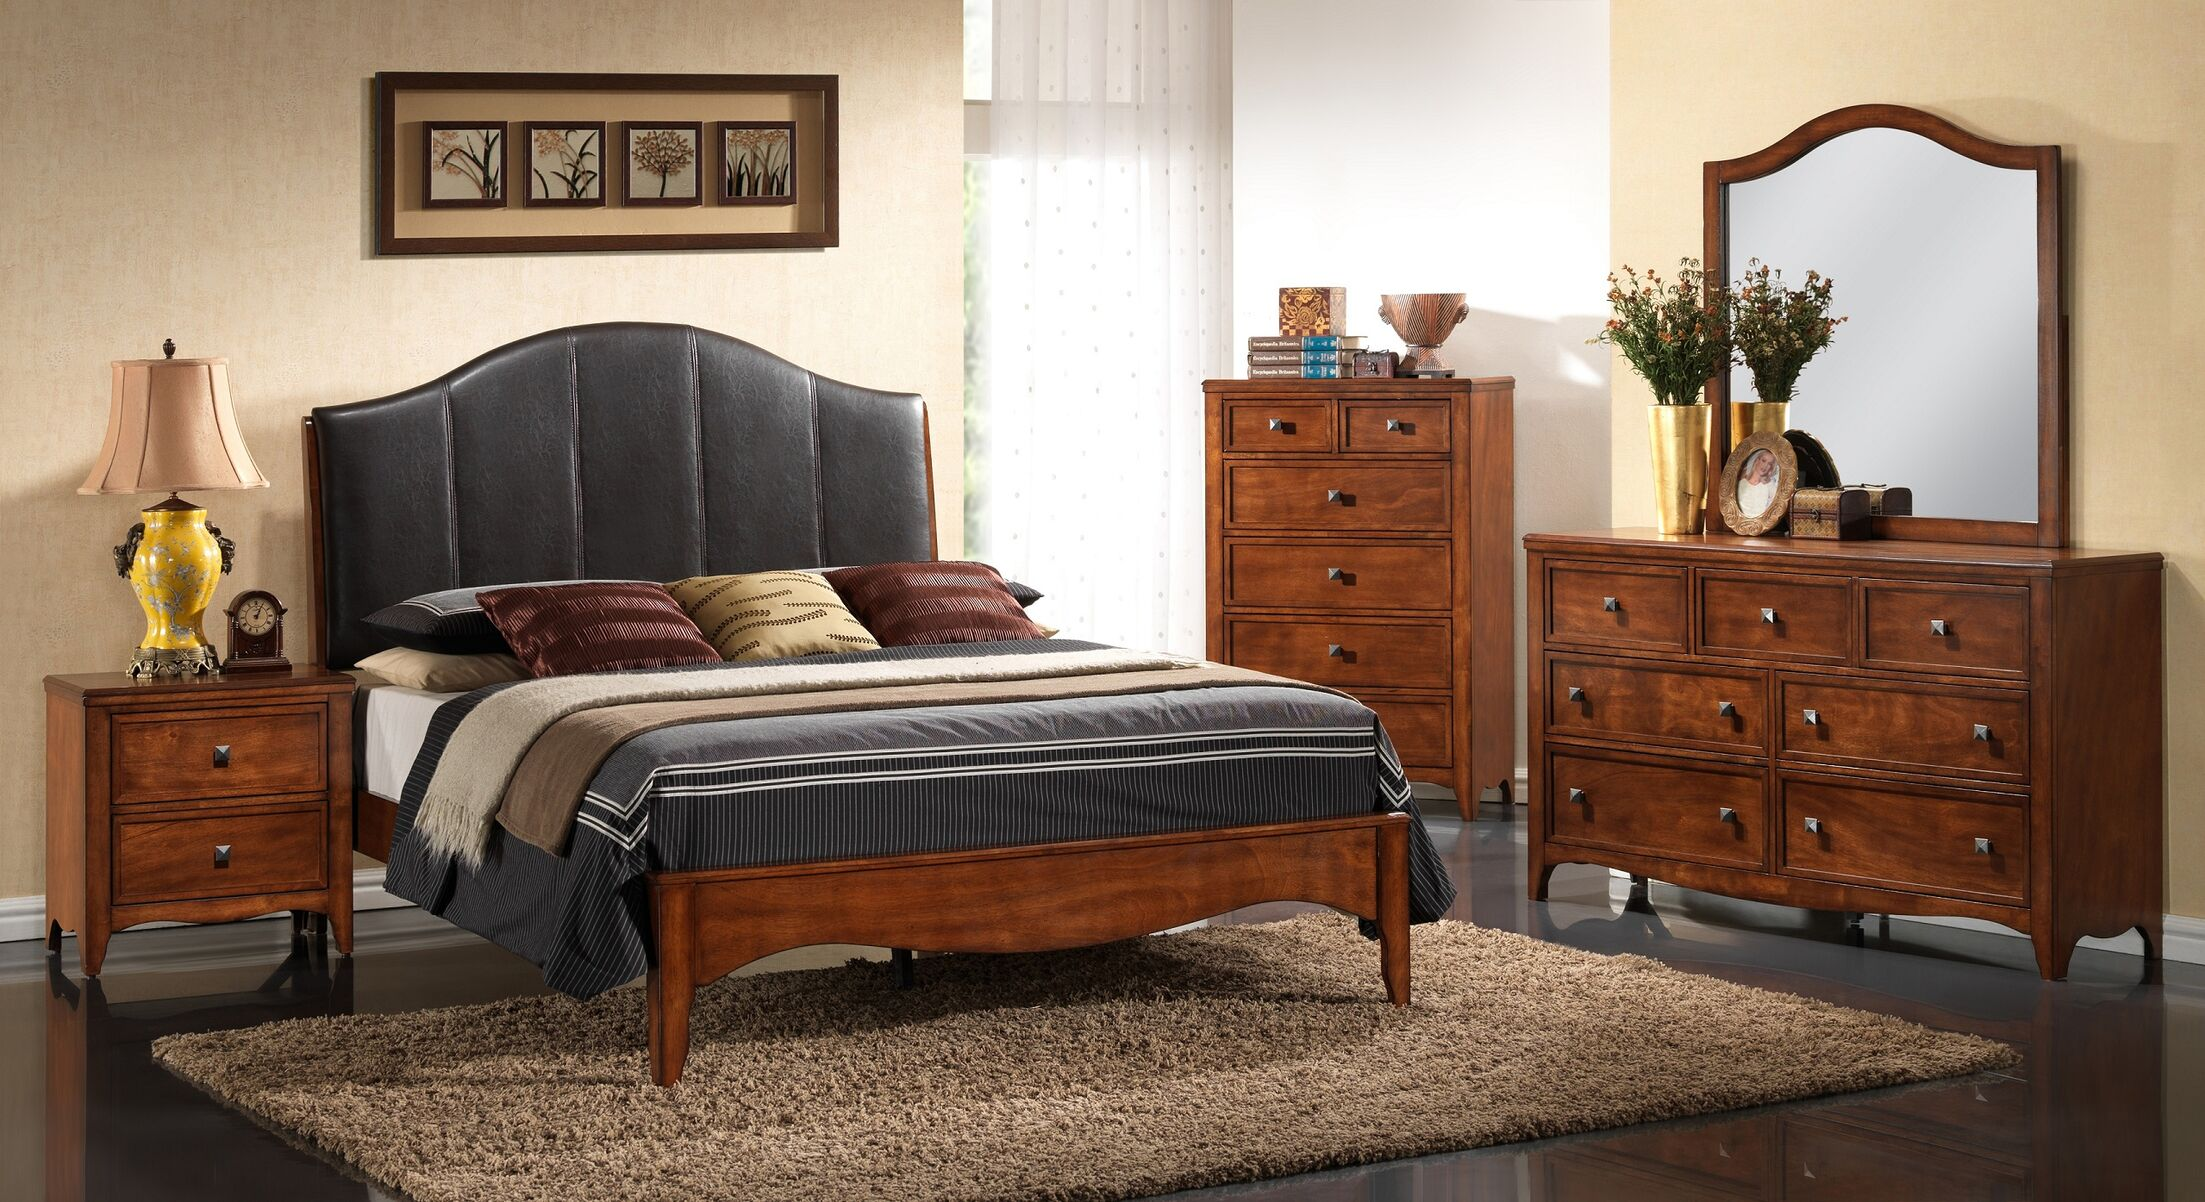 Auckland Queen Panel 5 Piece Bedroom set